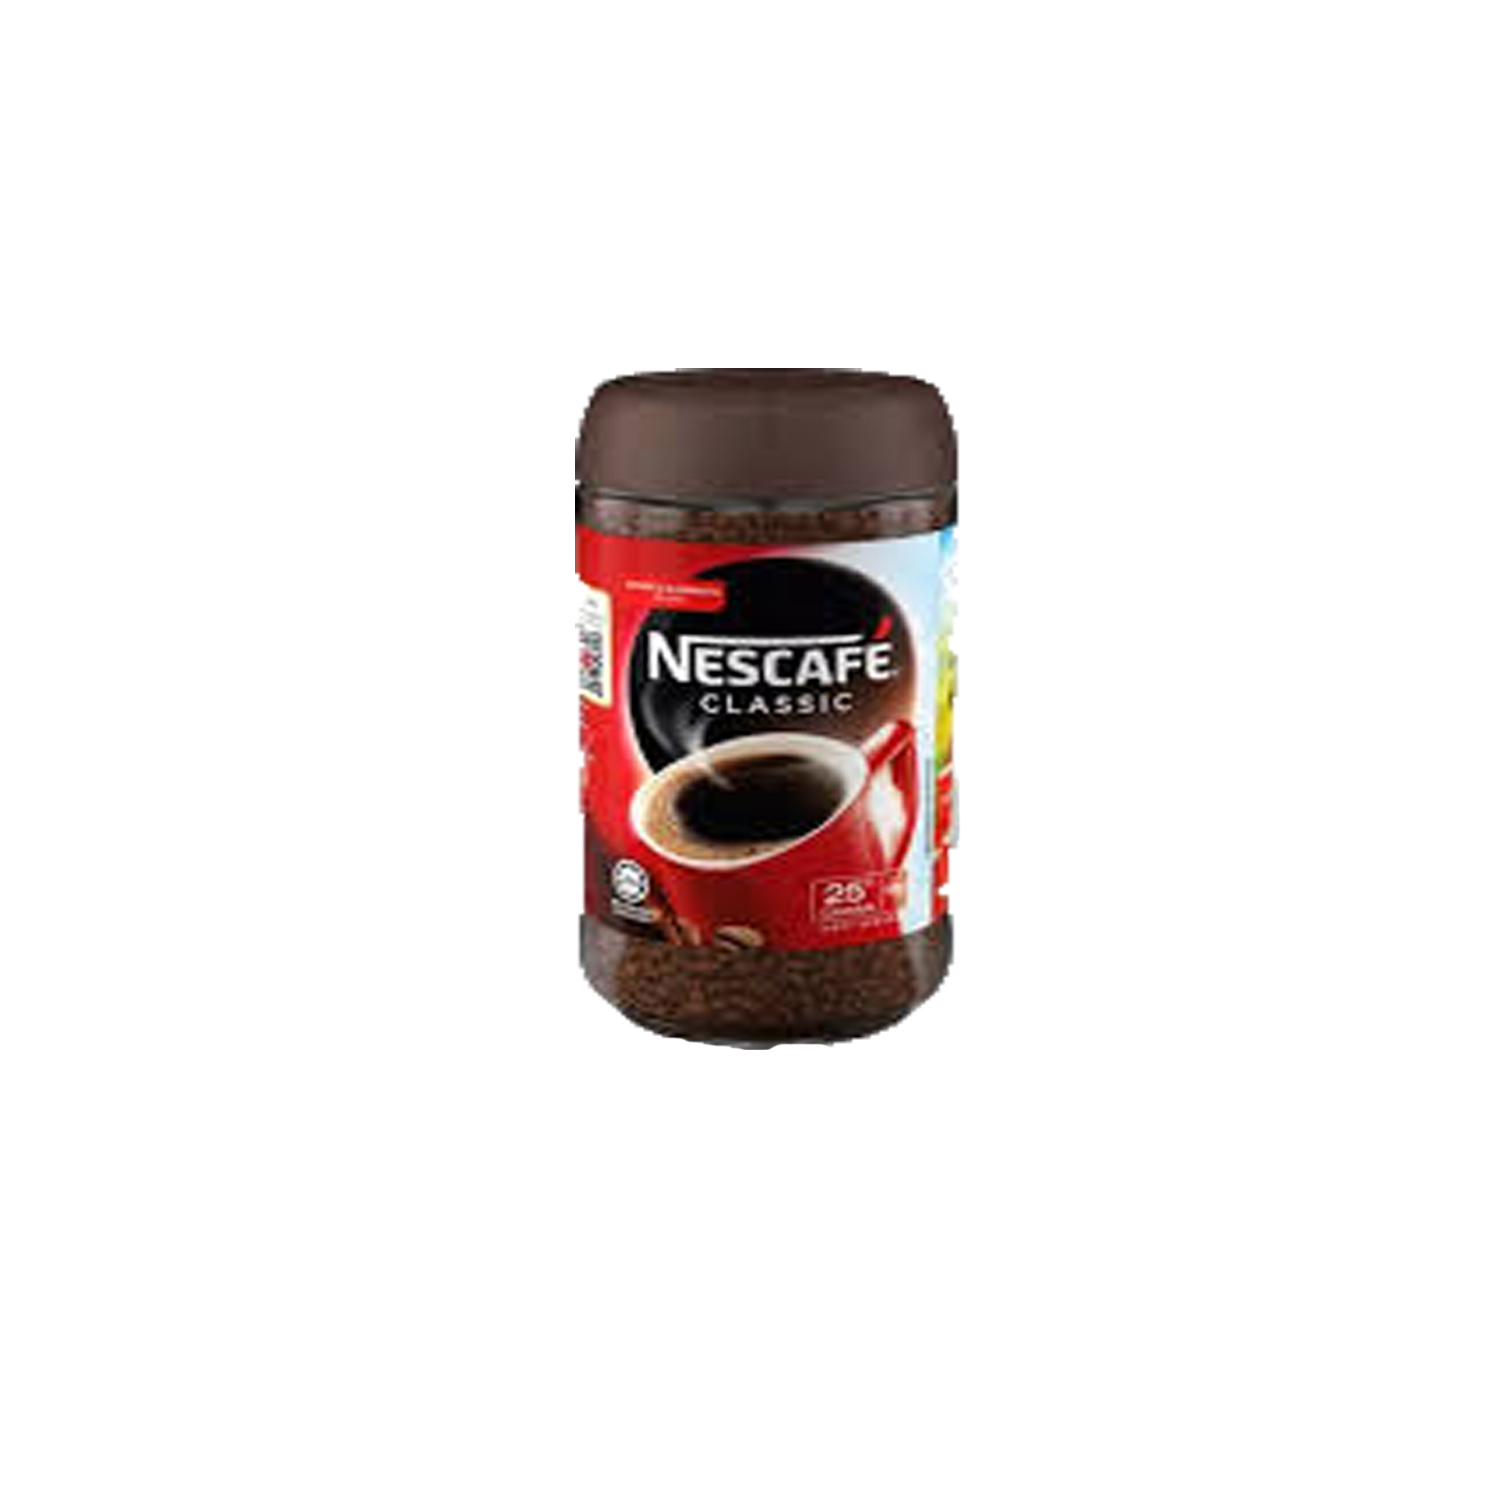 Nescafe Classic Coffee - JAR 50g